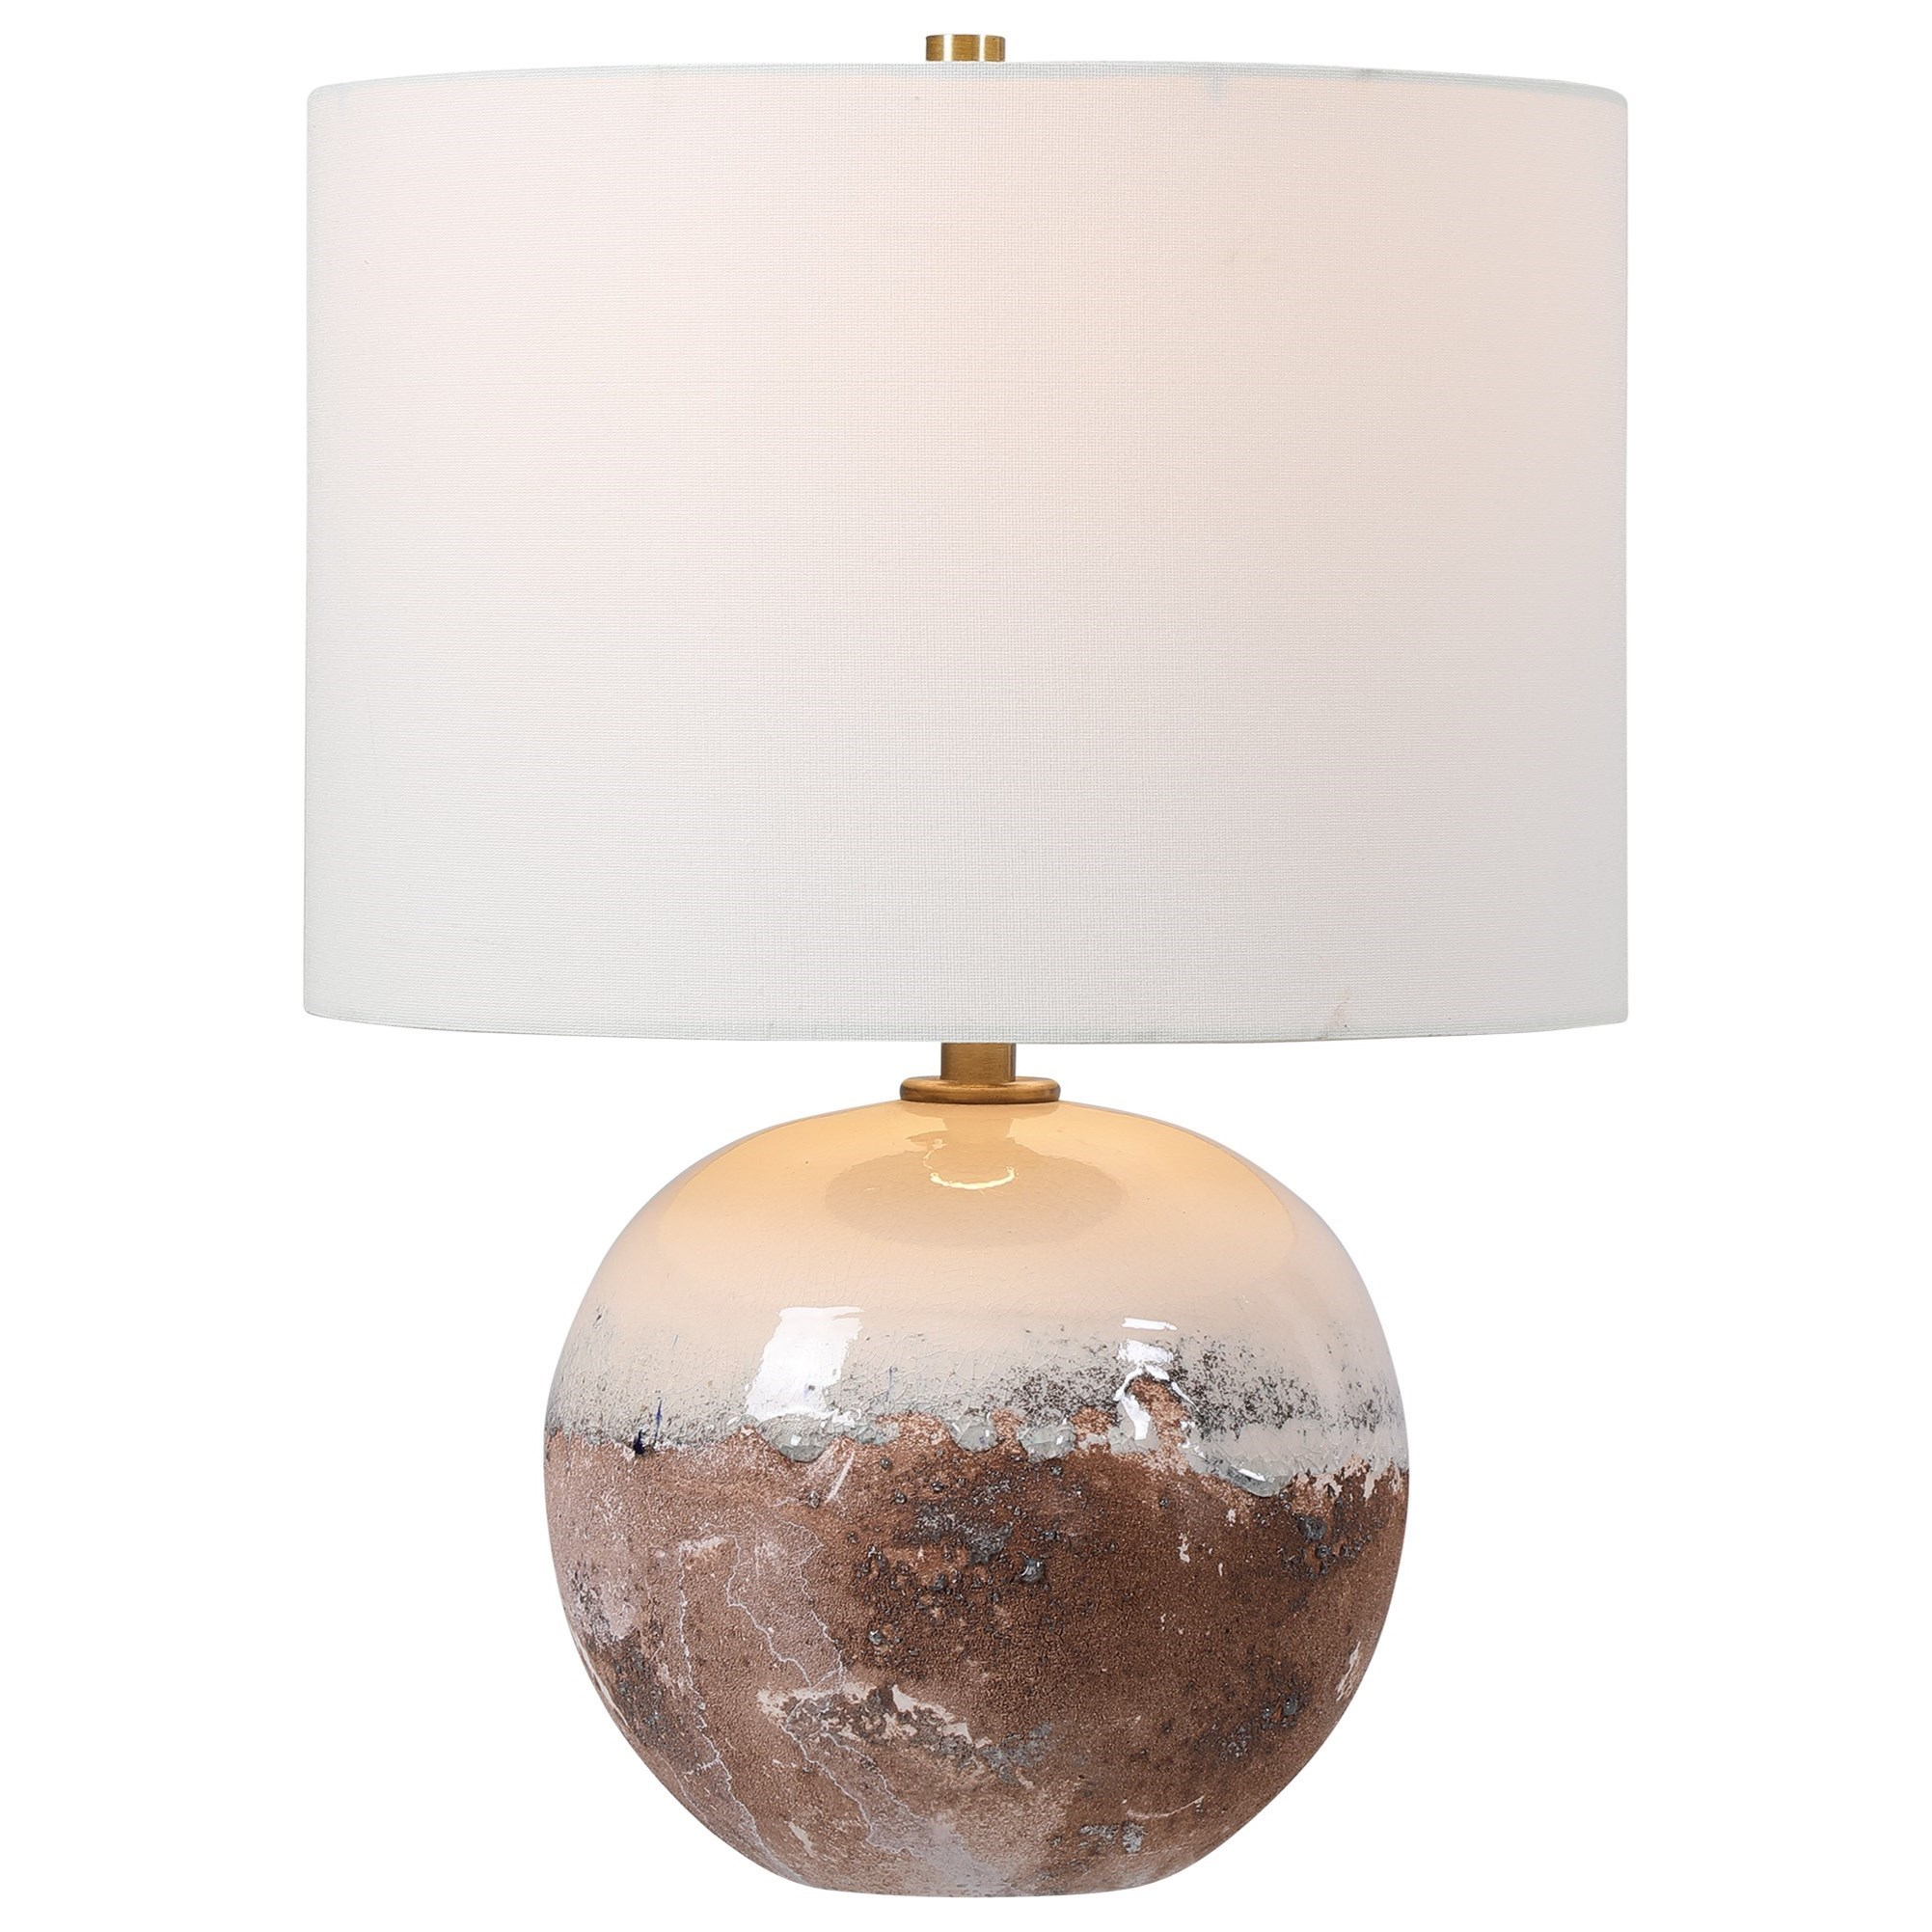 Accent Lamps Durango Terracotta Accent Lamp by Uttermost at Del Sol Furniture